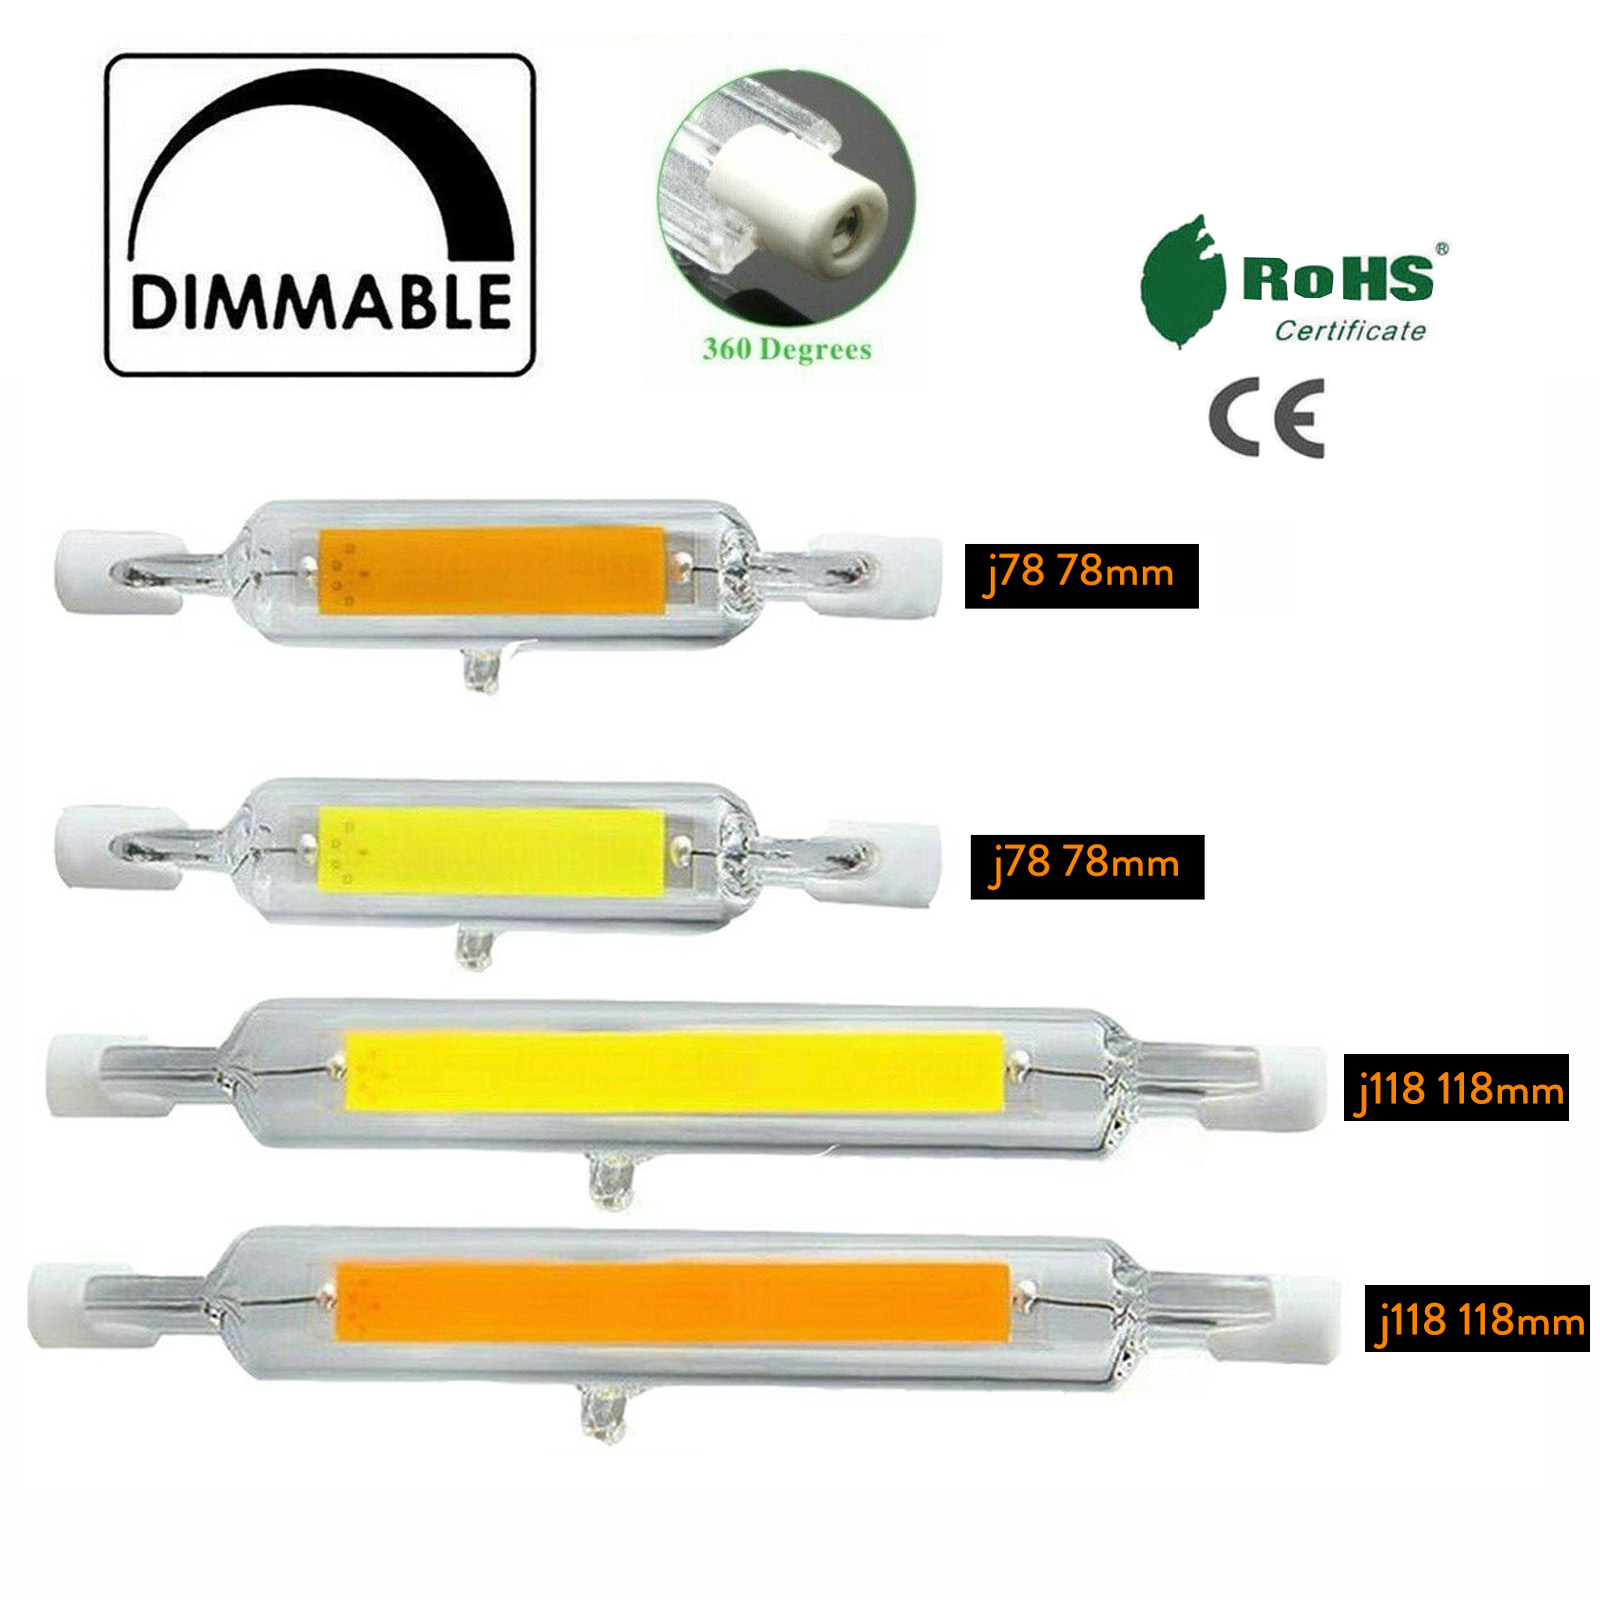 R7s LED 78mm 118mm 7W 12W 15W 25W Dimmable COB Bulbs Ceramic Glass Tube Light Ampoule Replacement Halogen Bombillas Spotlight